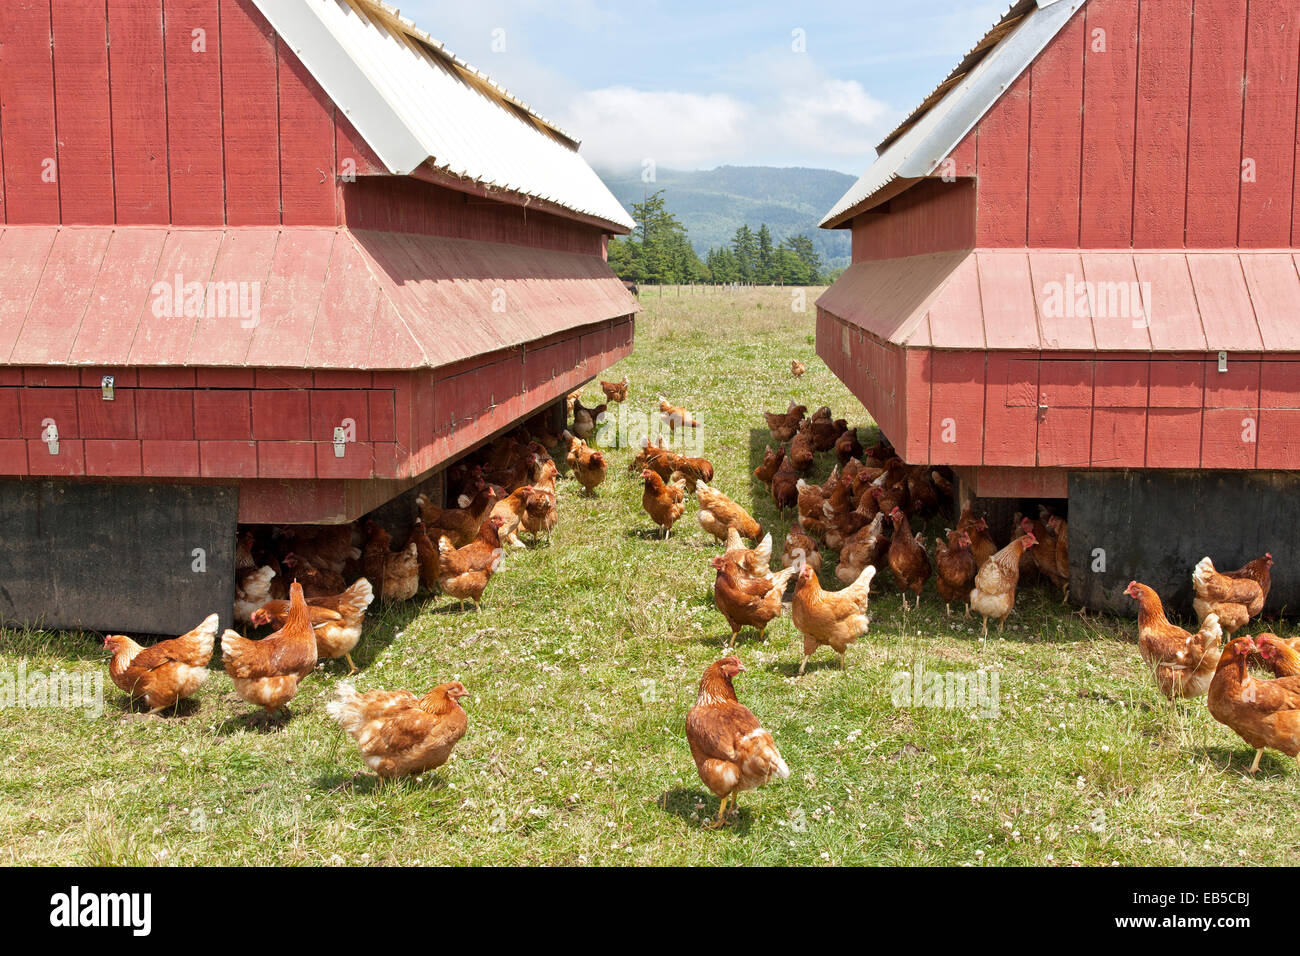 Free Range organic chickens, egg production,  pasture raised, portable housing. Stock Photo